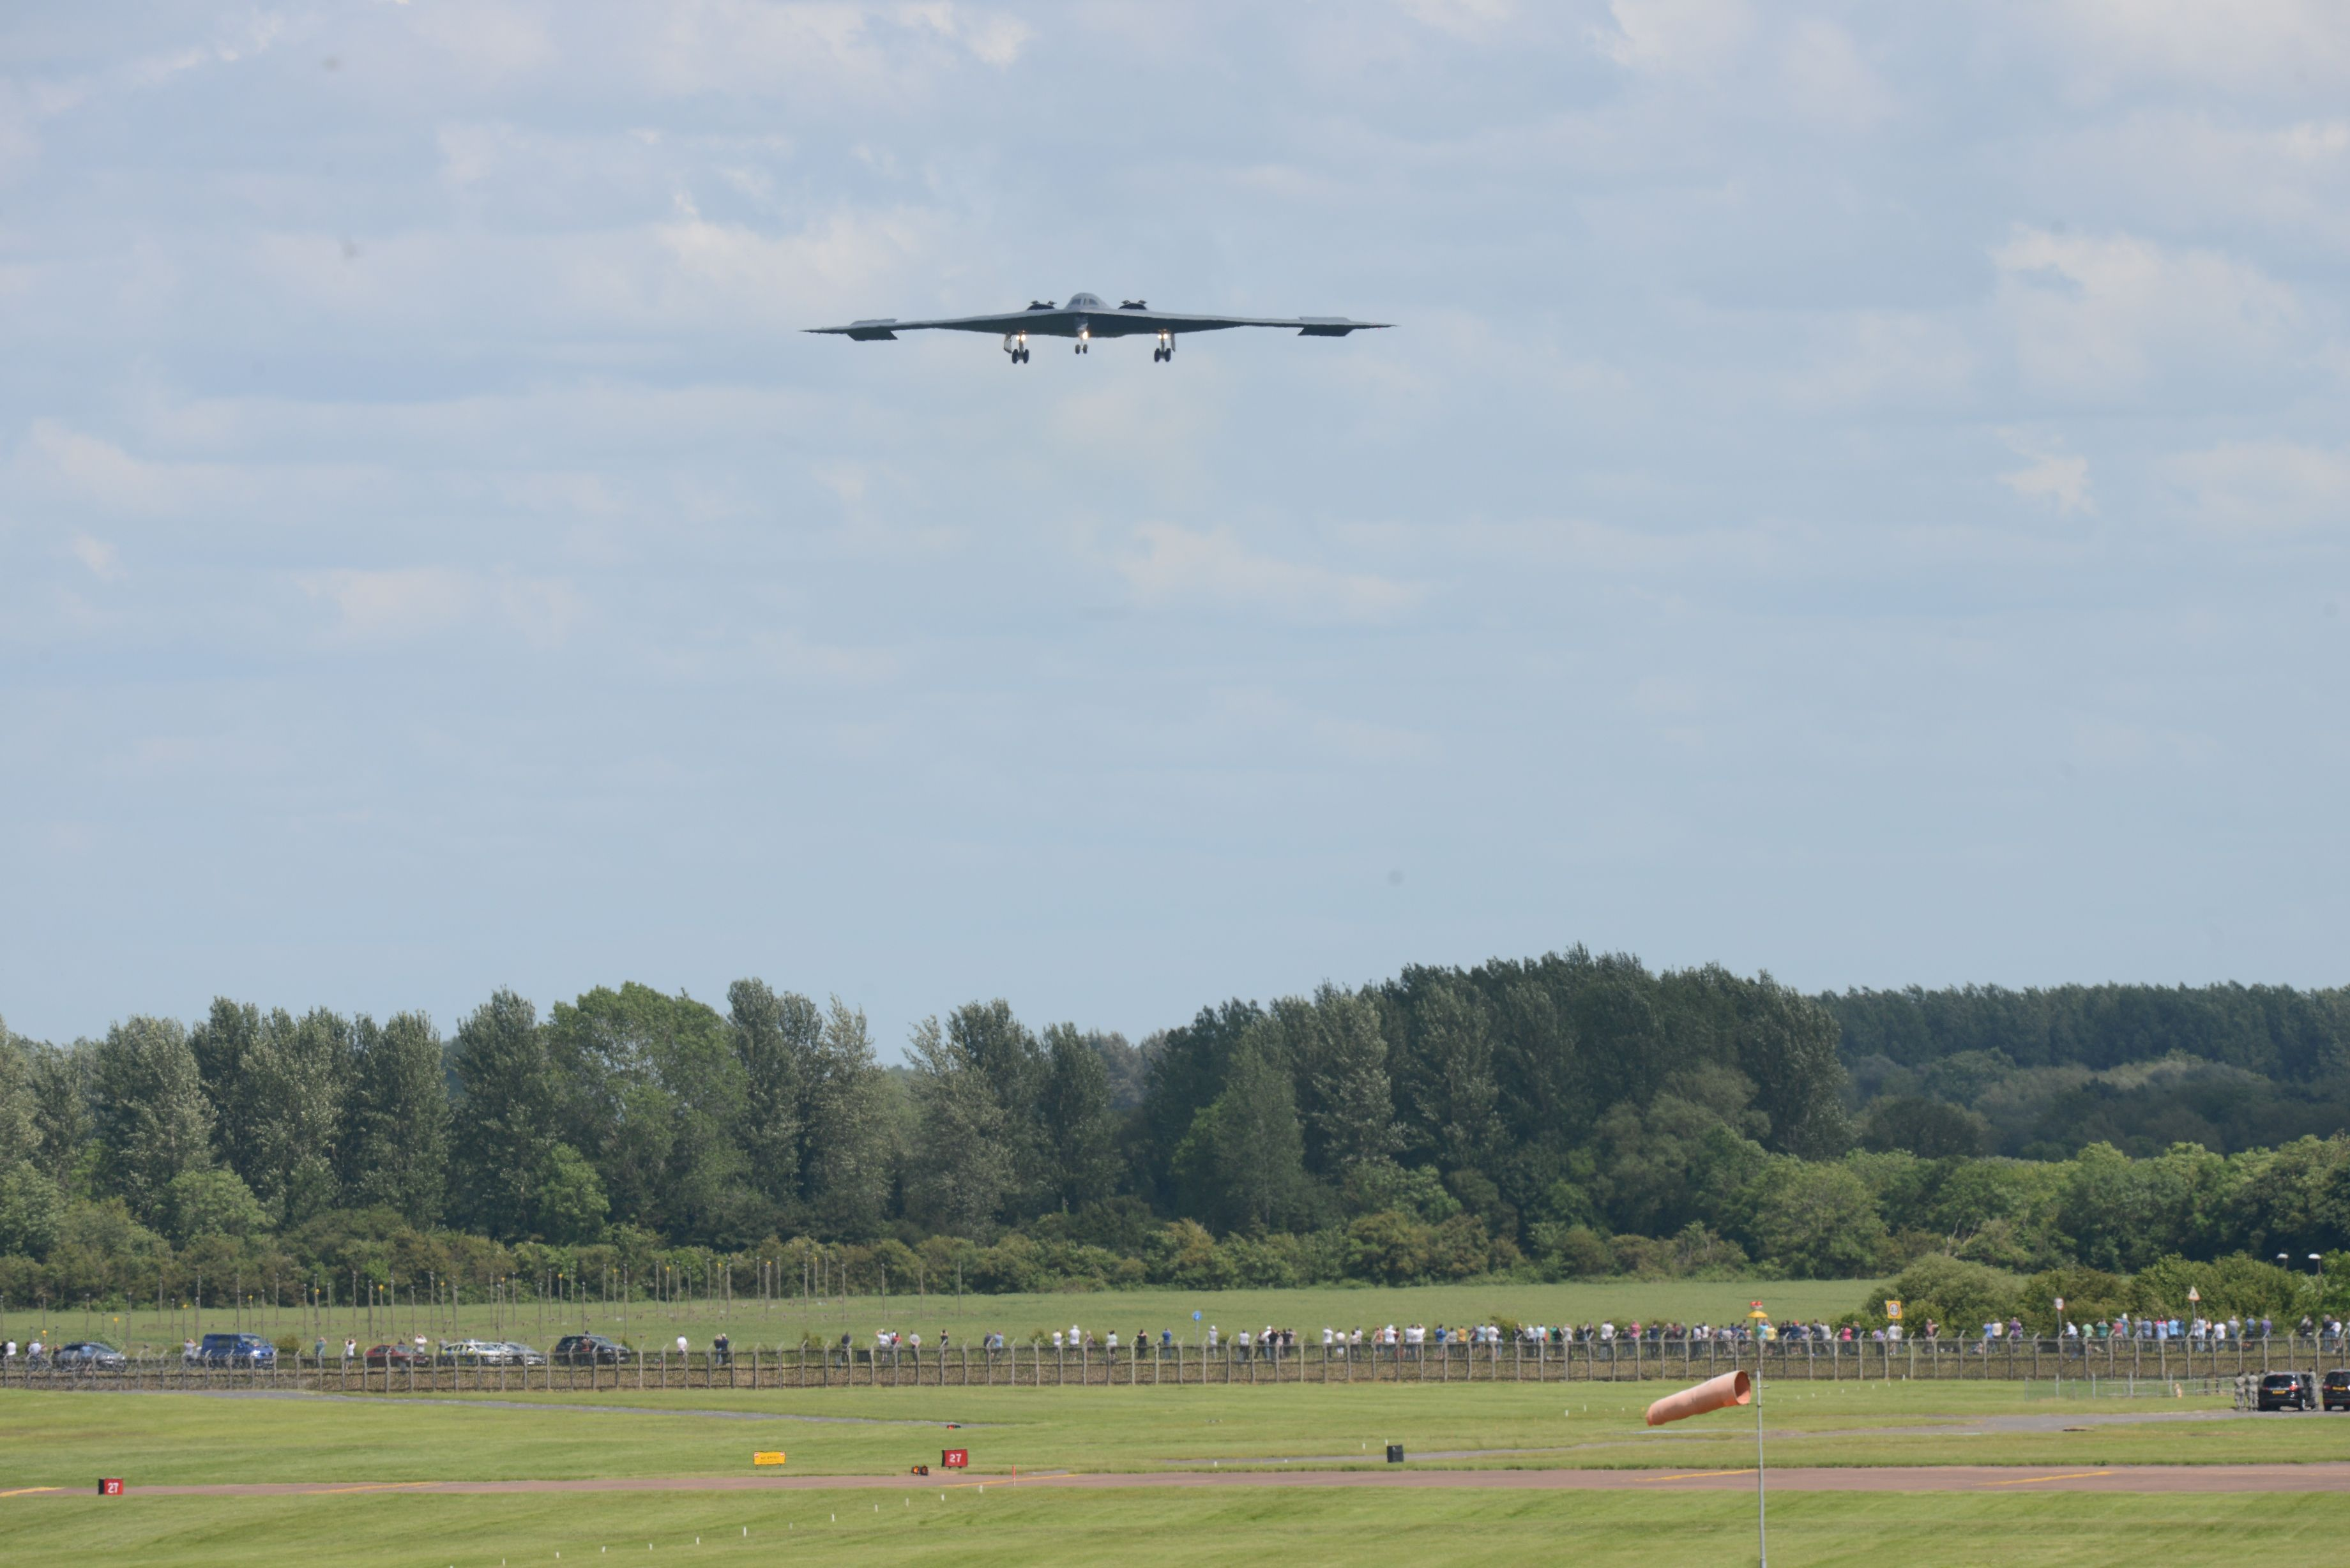 A B-2 Spirit from the 509th Bomb Wing, Whiteman Air Force Base, Missouri, prepares to land on the runway at RAF Fairford, England, June 8, 2014. The B-2 Spirit is a multi-role bomber capable of delivering both conventional and nuclear munitions. (U.S. Air Force photo by Tech. Sgt. Chrissy Best/Released)